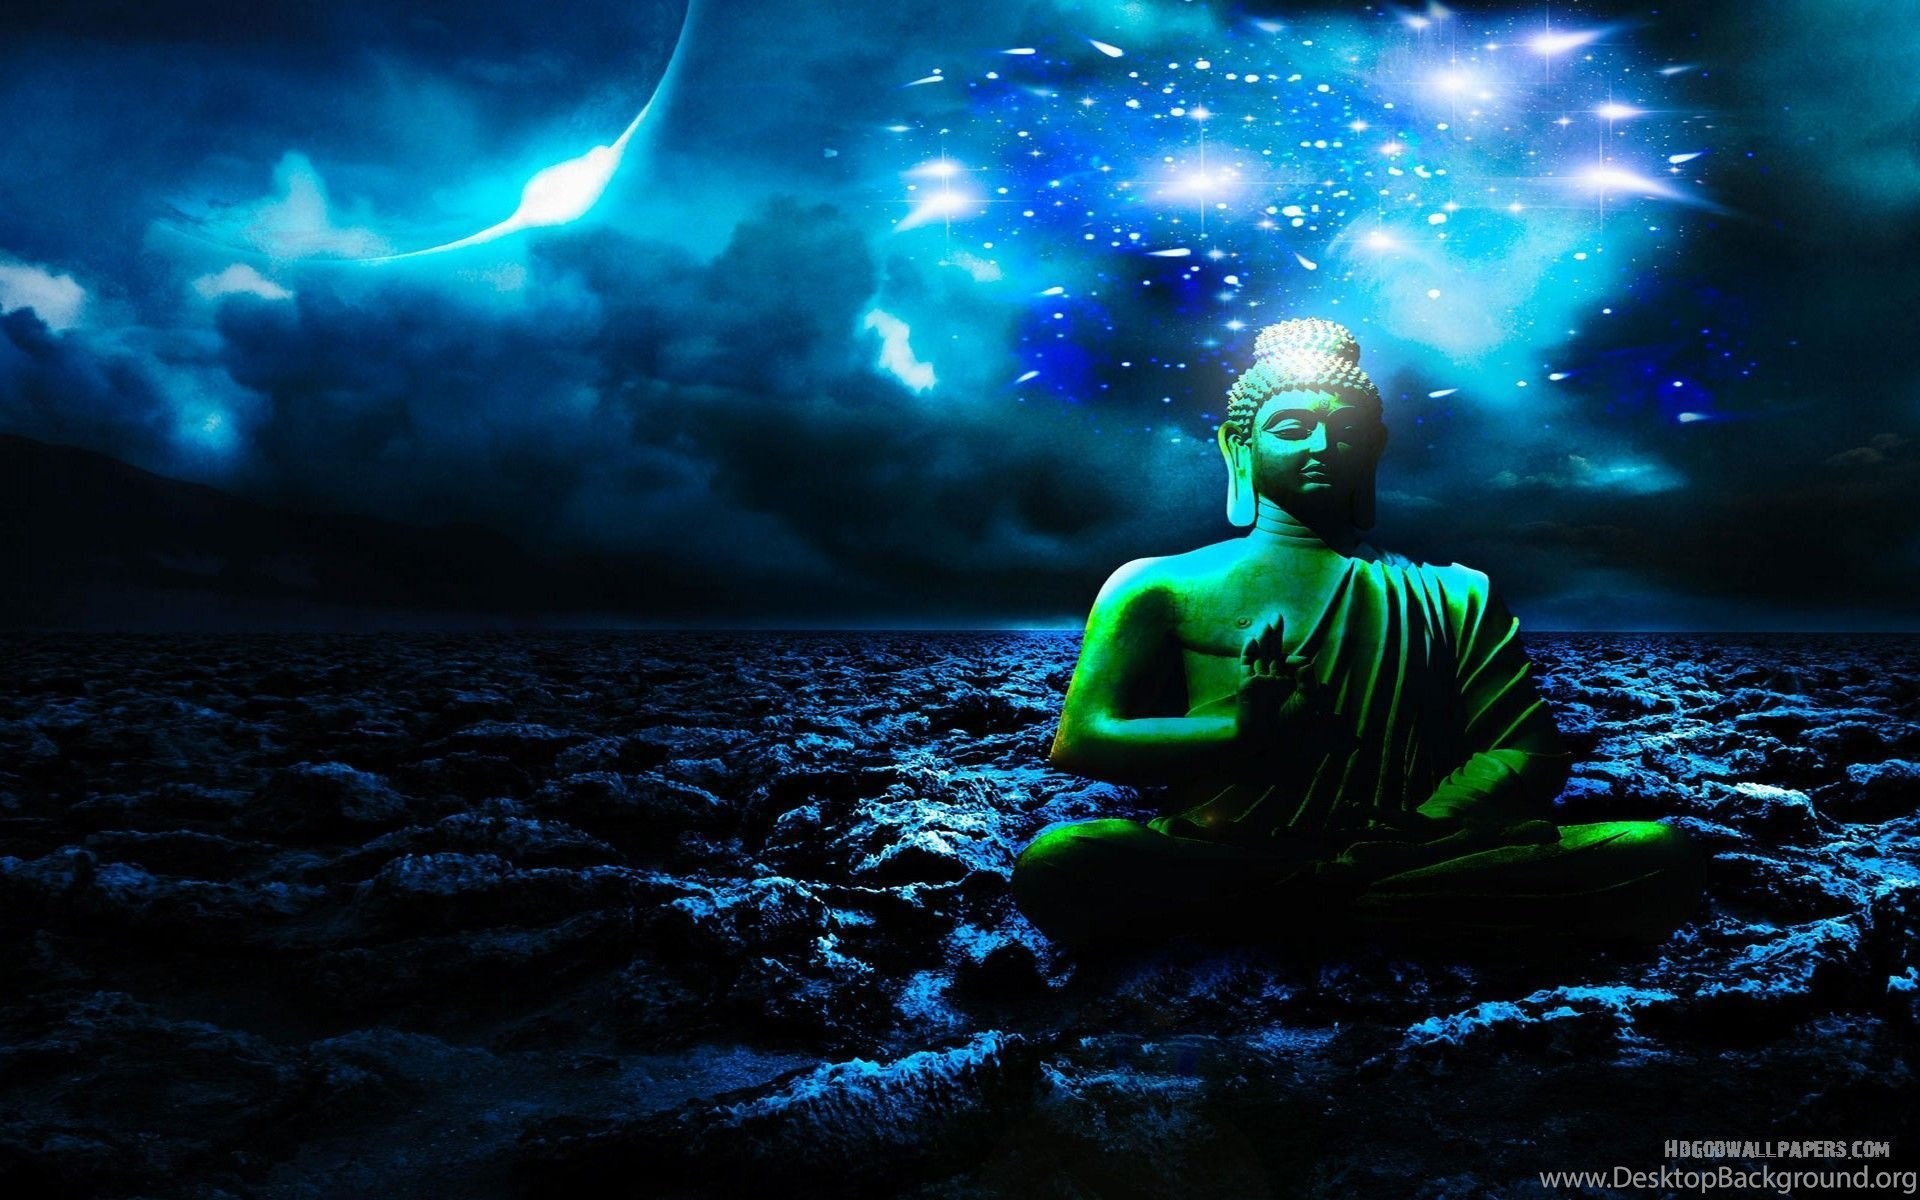 Hd Lord Buddha Wallpaper Images Pictures Download Desktop Background